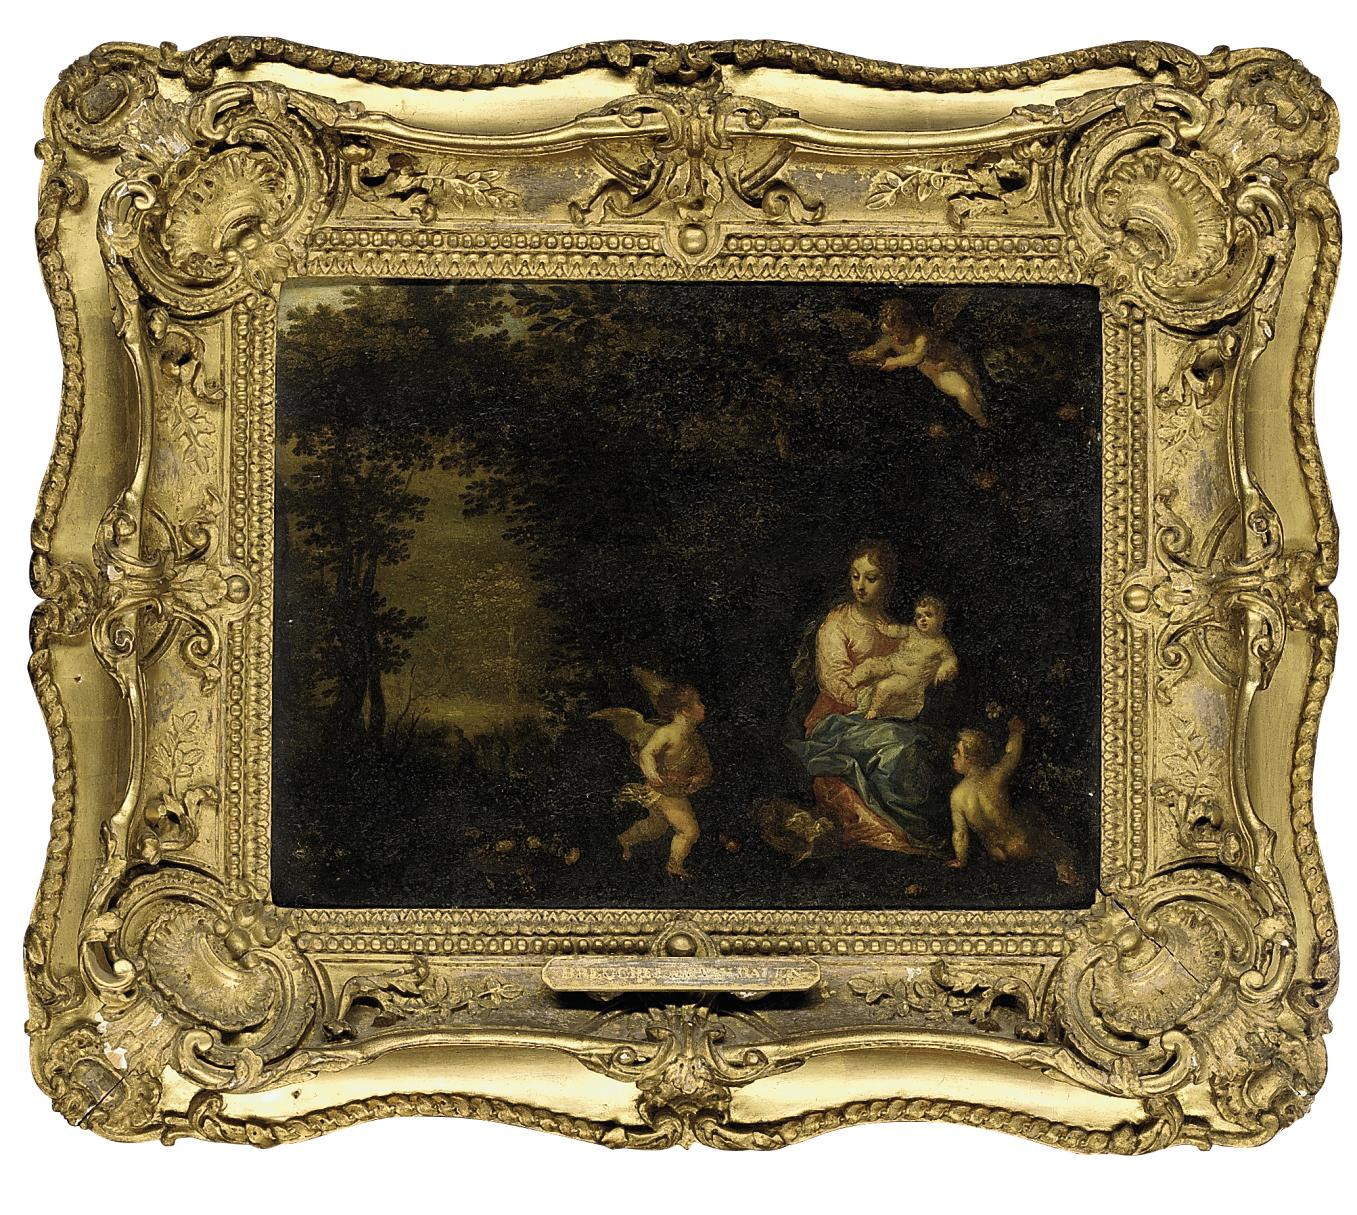 The Virgin and Child in a wooded landscape attended by putti